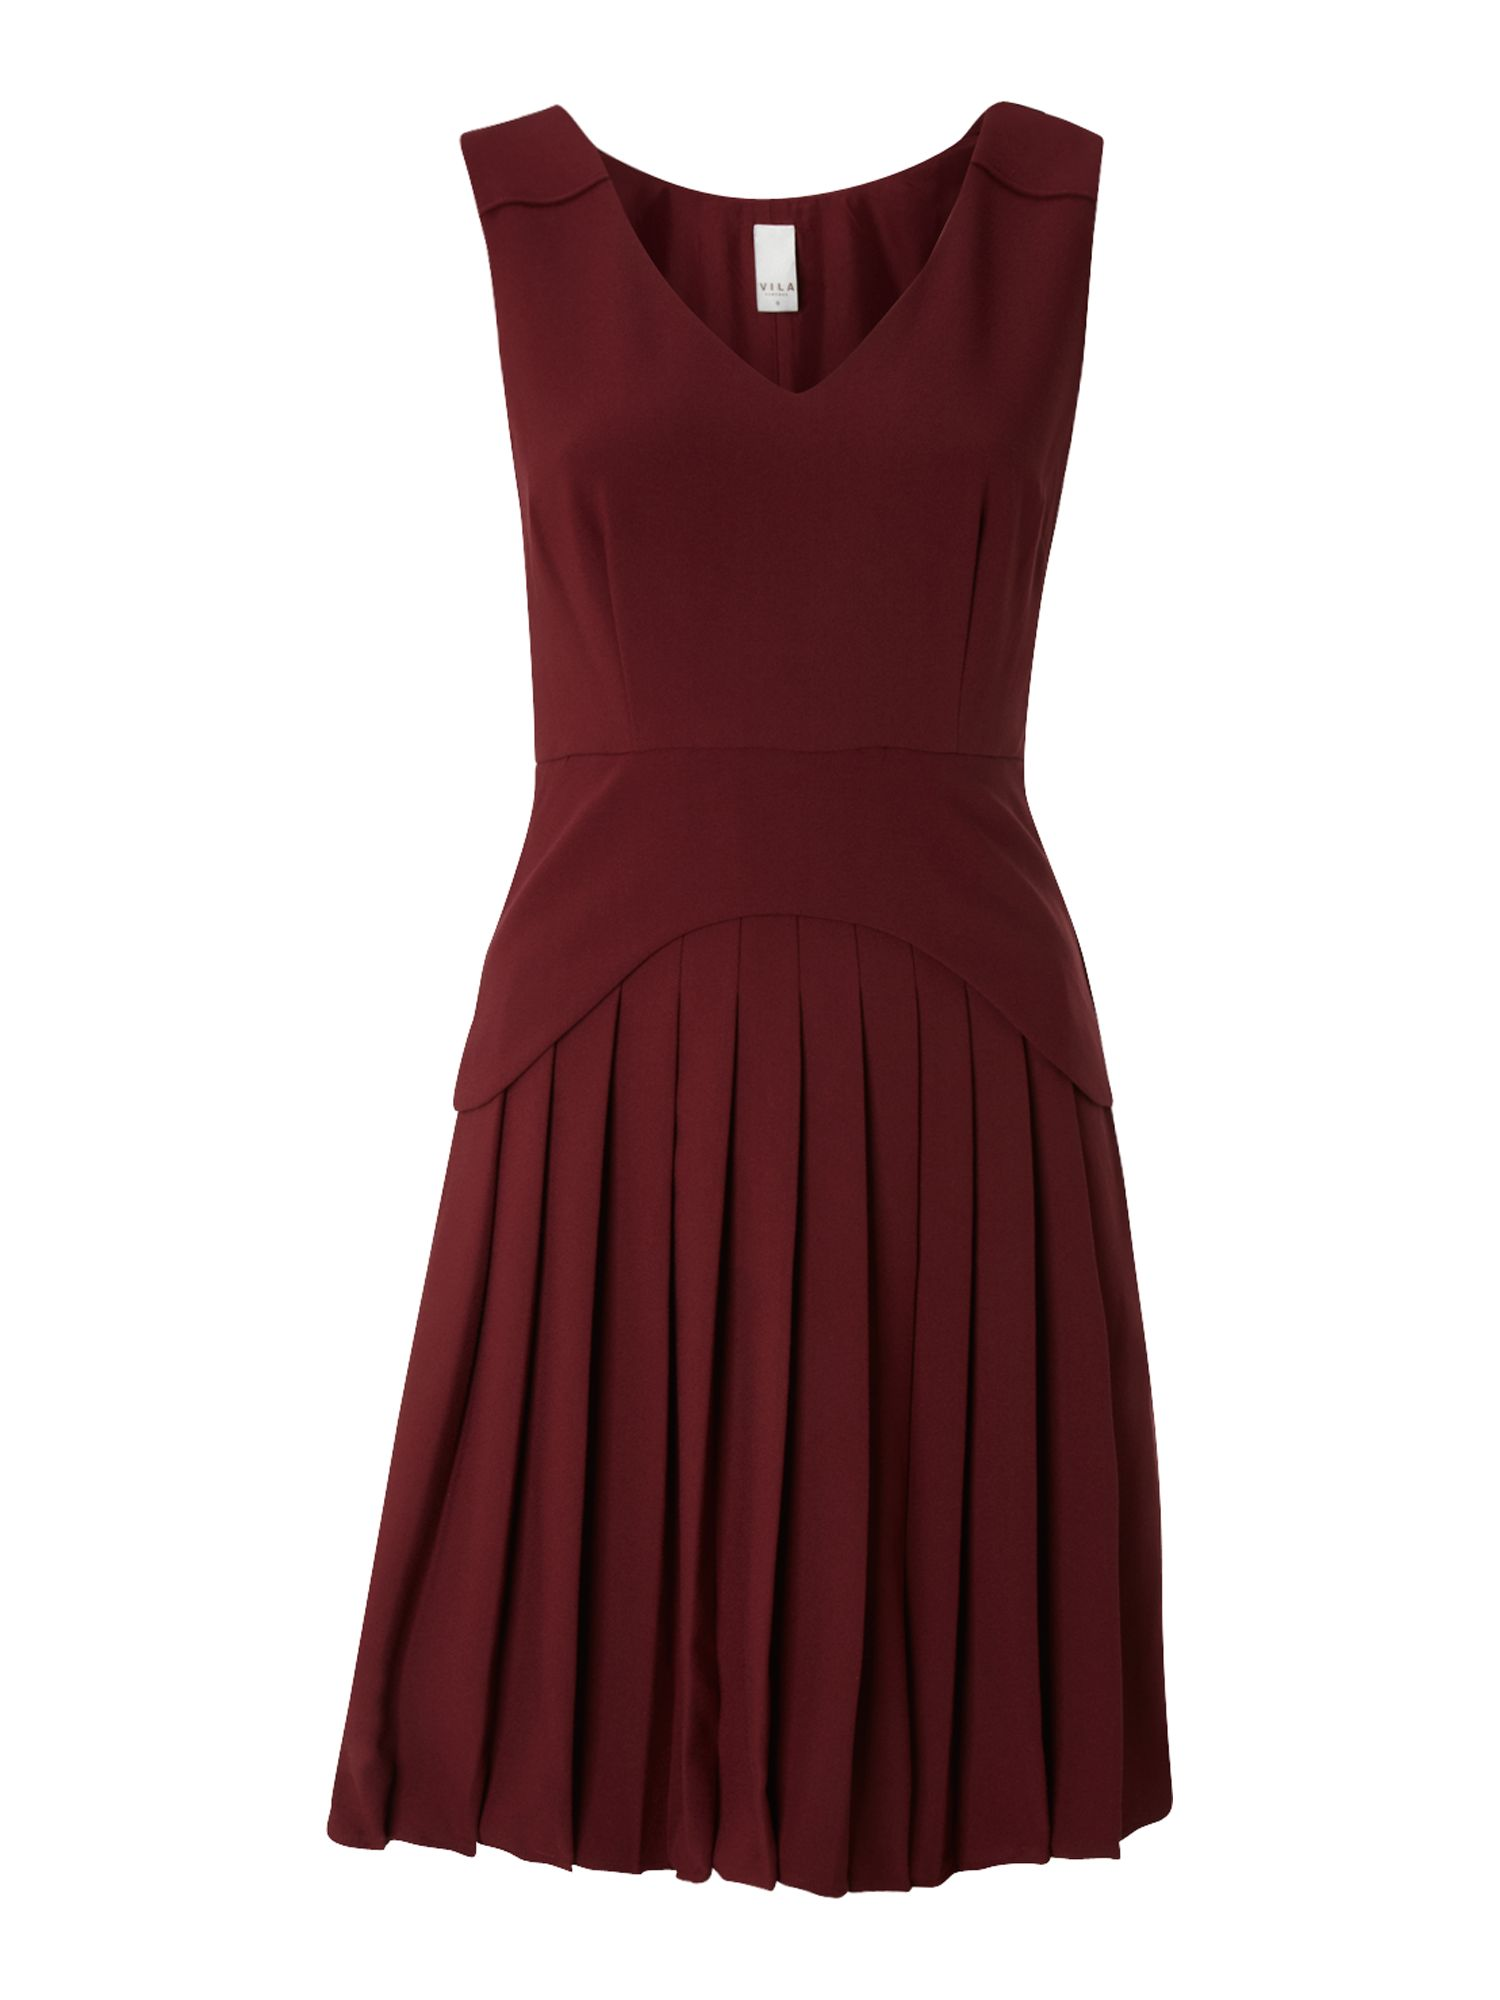 Pleated peplum skirt dress